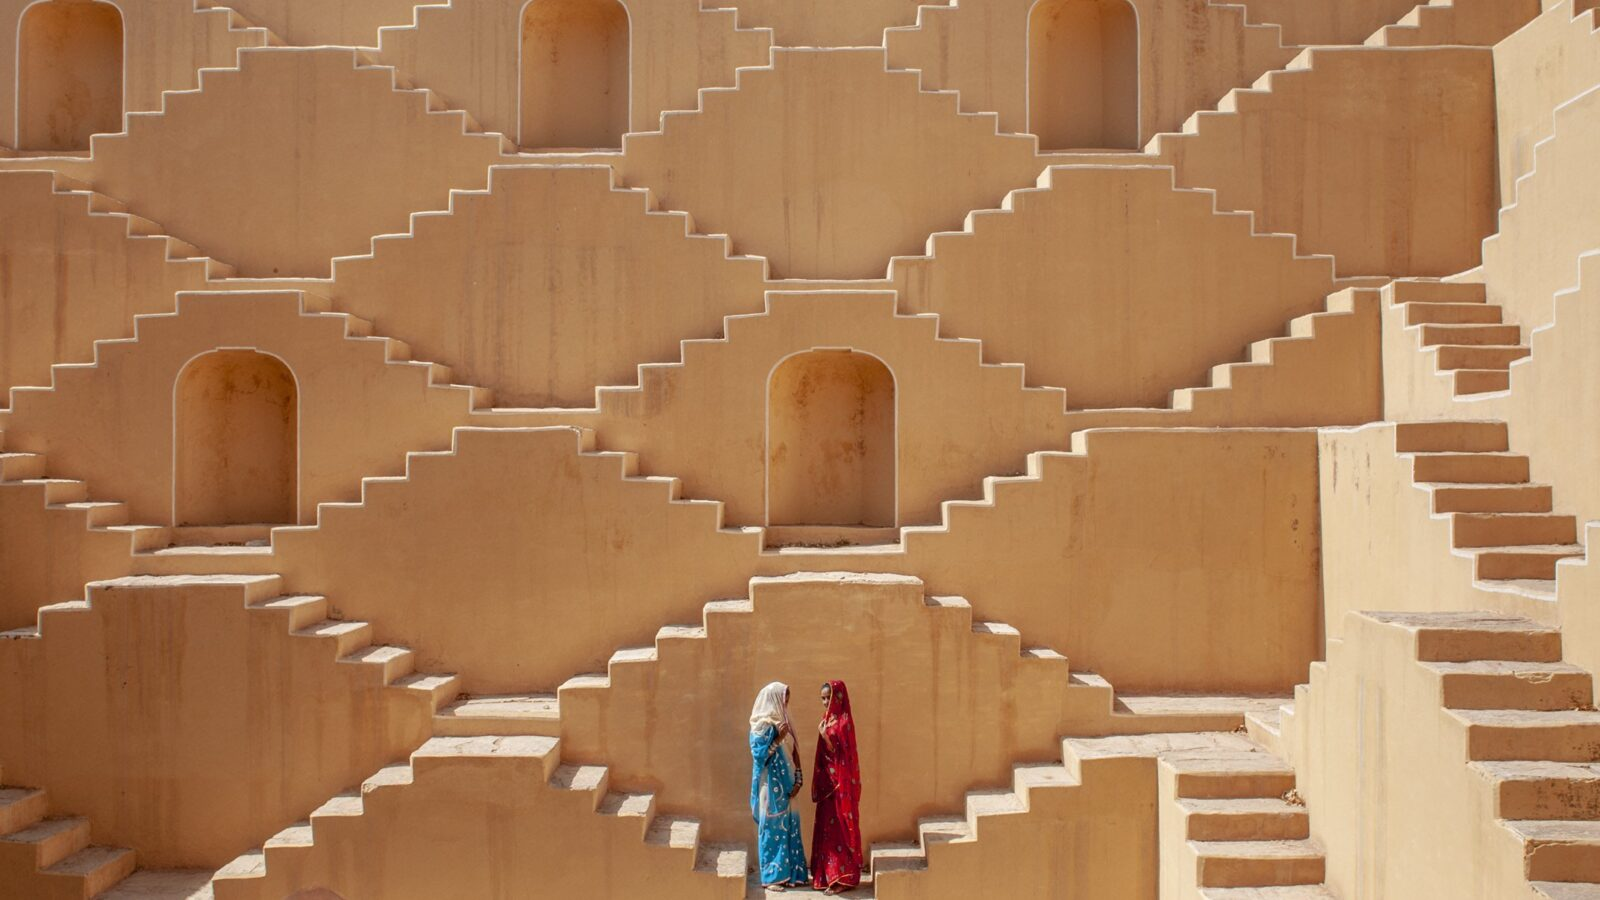 Jasmin (wearing red) and Manisha Singh (white and blue sari) pose at the Baoli at Amer, a water well in the city of Japiur in India's Rajasthan Thar desert. (Photo by Ami Vitale)